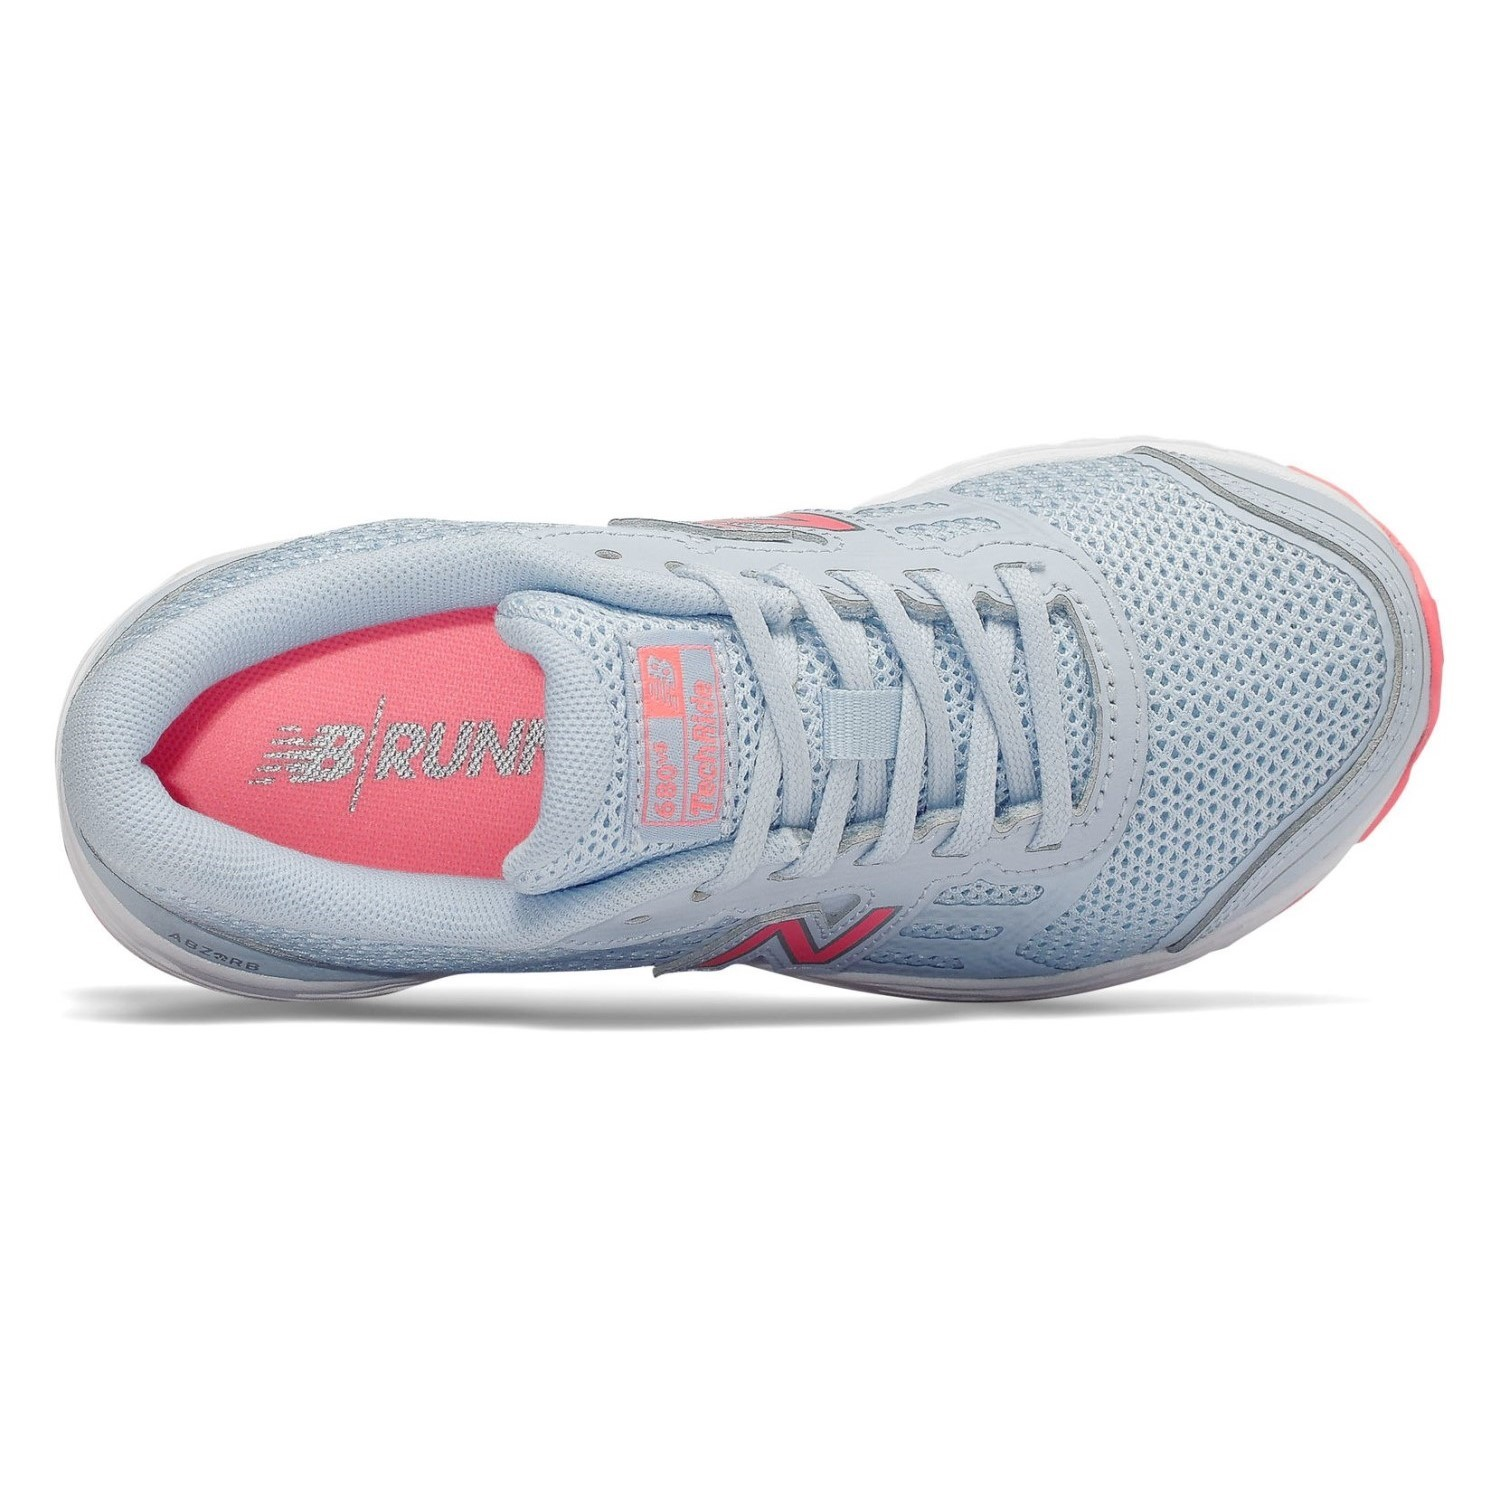 7d00d6e470f2 New Balance 680v5 - Kids Girls Running Shoes - Air Blue Guava ...